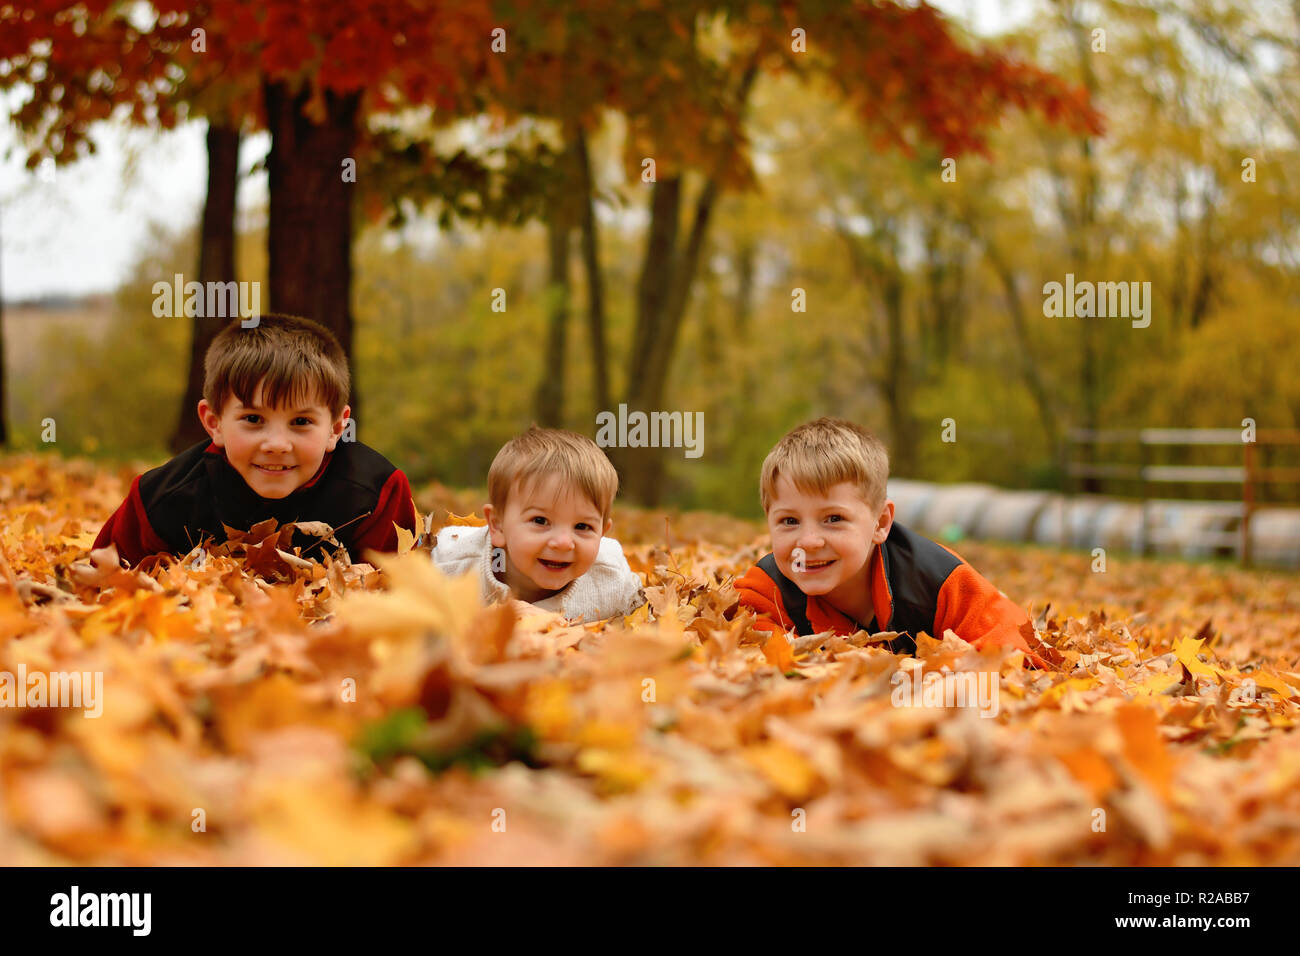 three boys playing in the Autumn leaves in the country - Stock Image